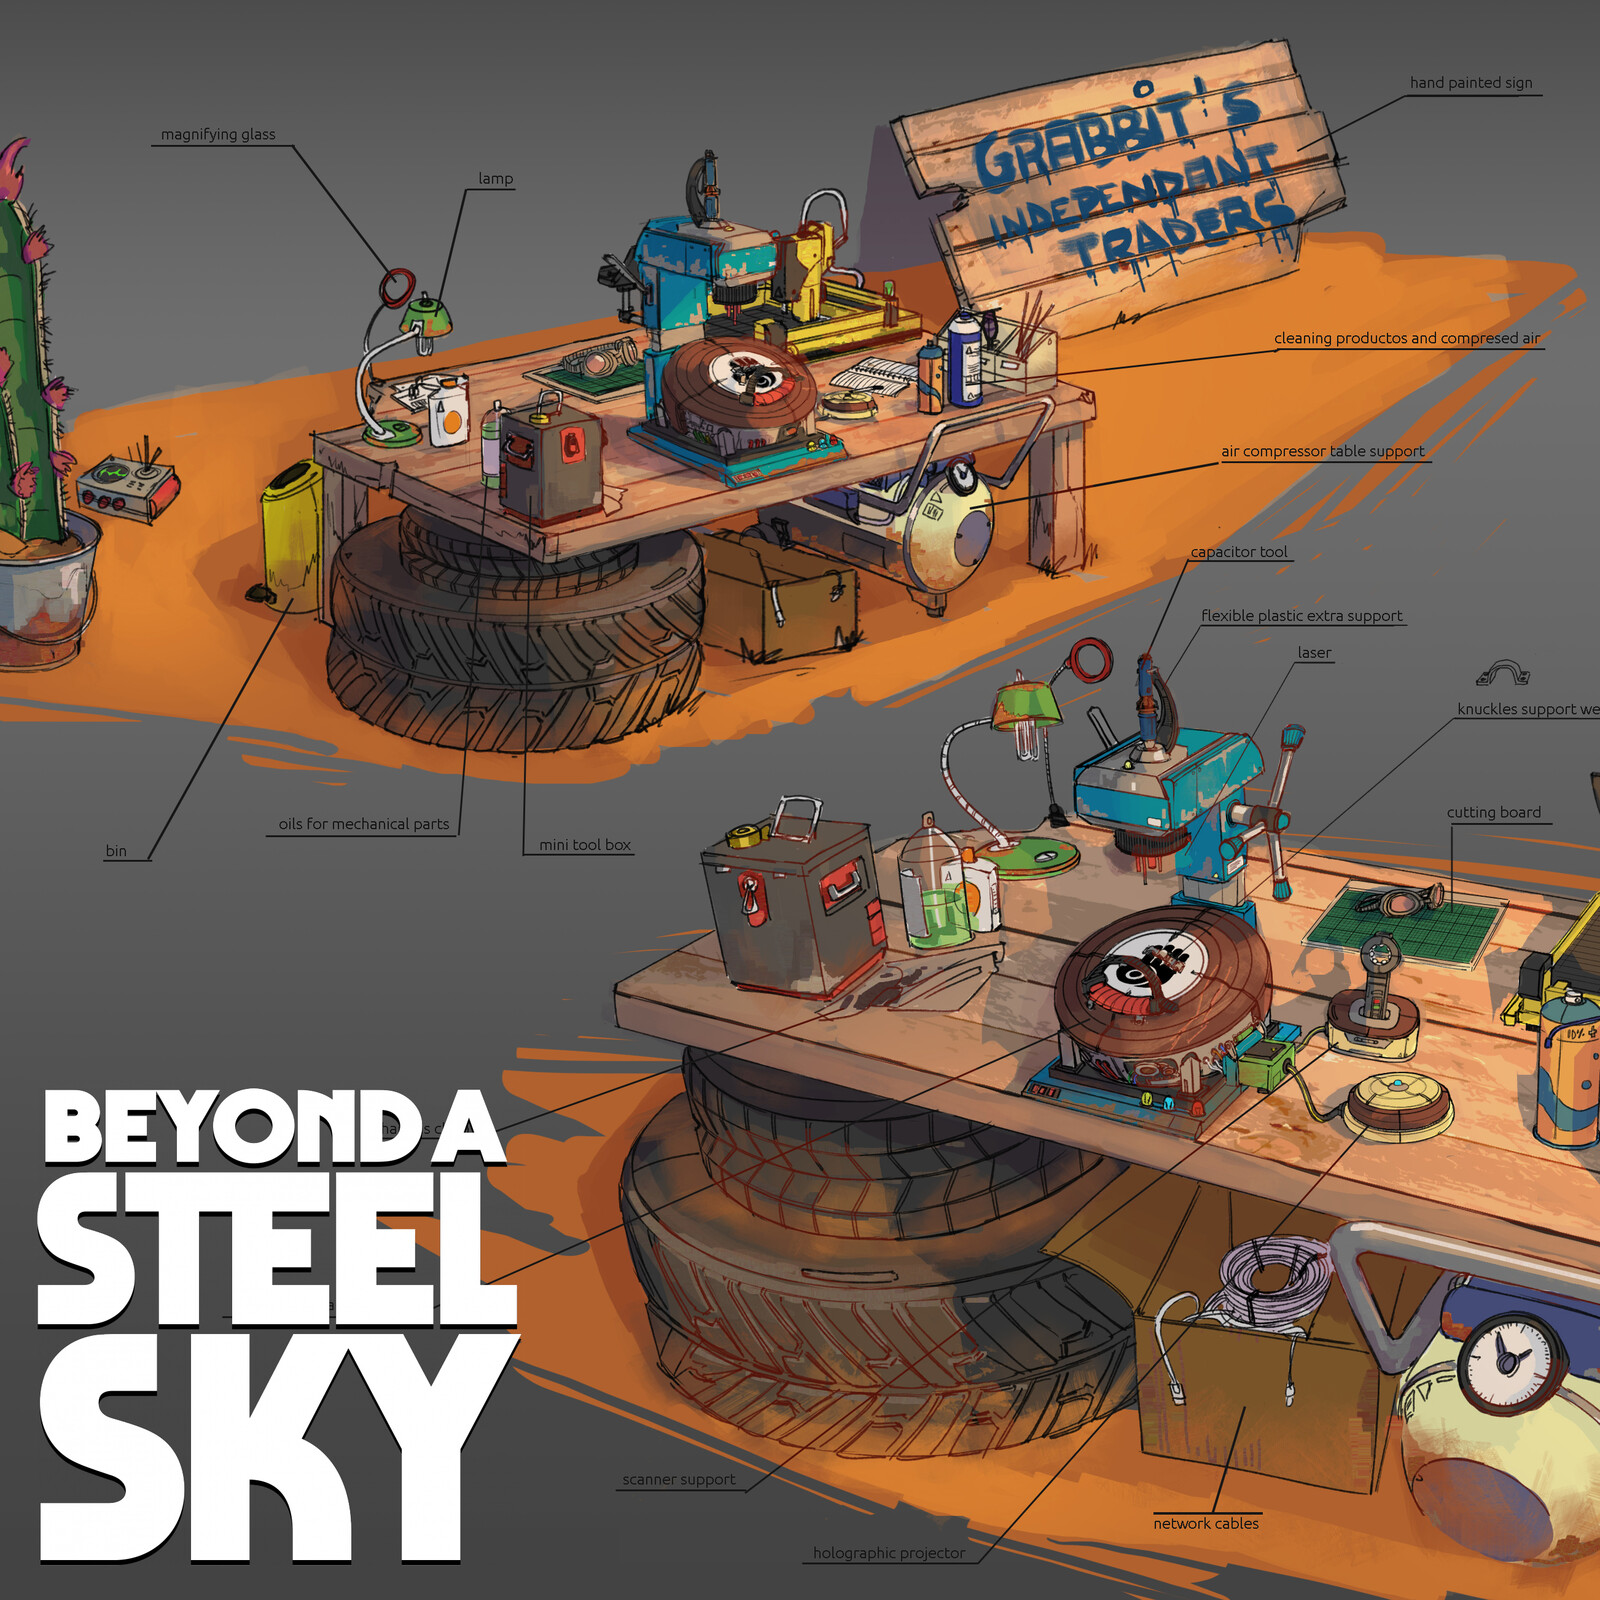 BEYOND A STEEL SKY: Ember's workbench